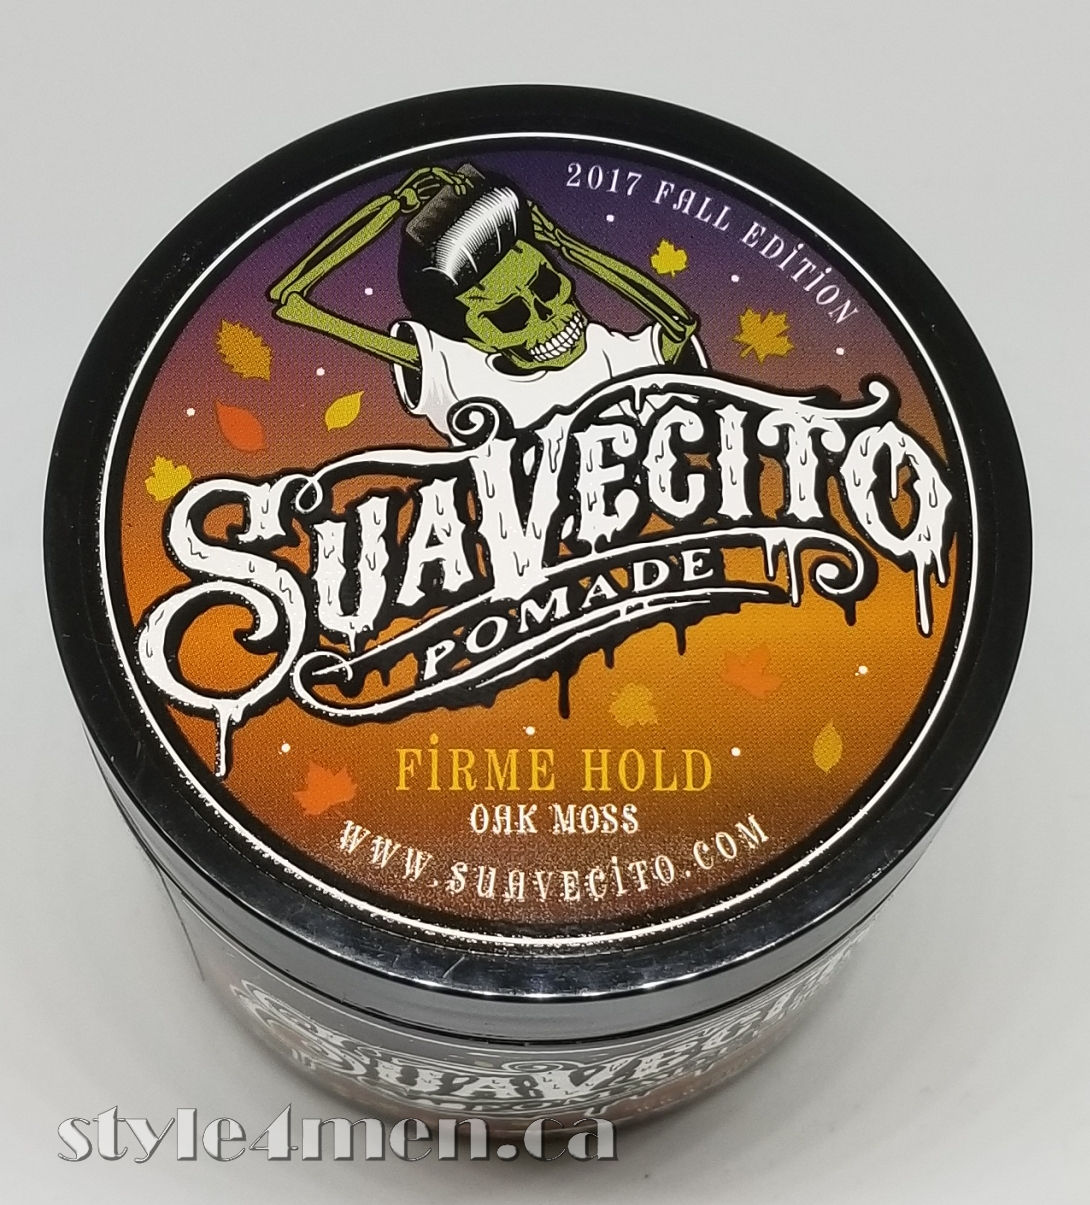 Suavecito Fall 2017 Pomade Our Favorite Skull Does Halloween Original Firme Hold Strong Made In Usa Fall2017 3